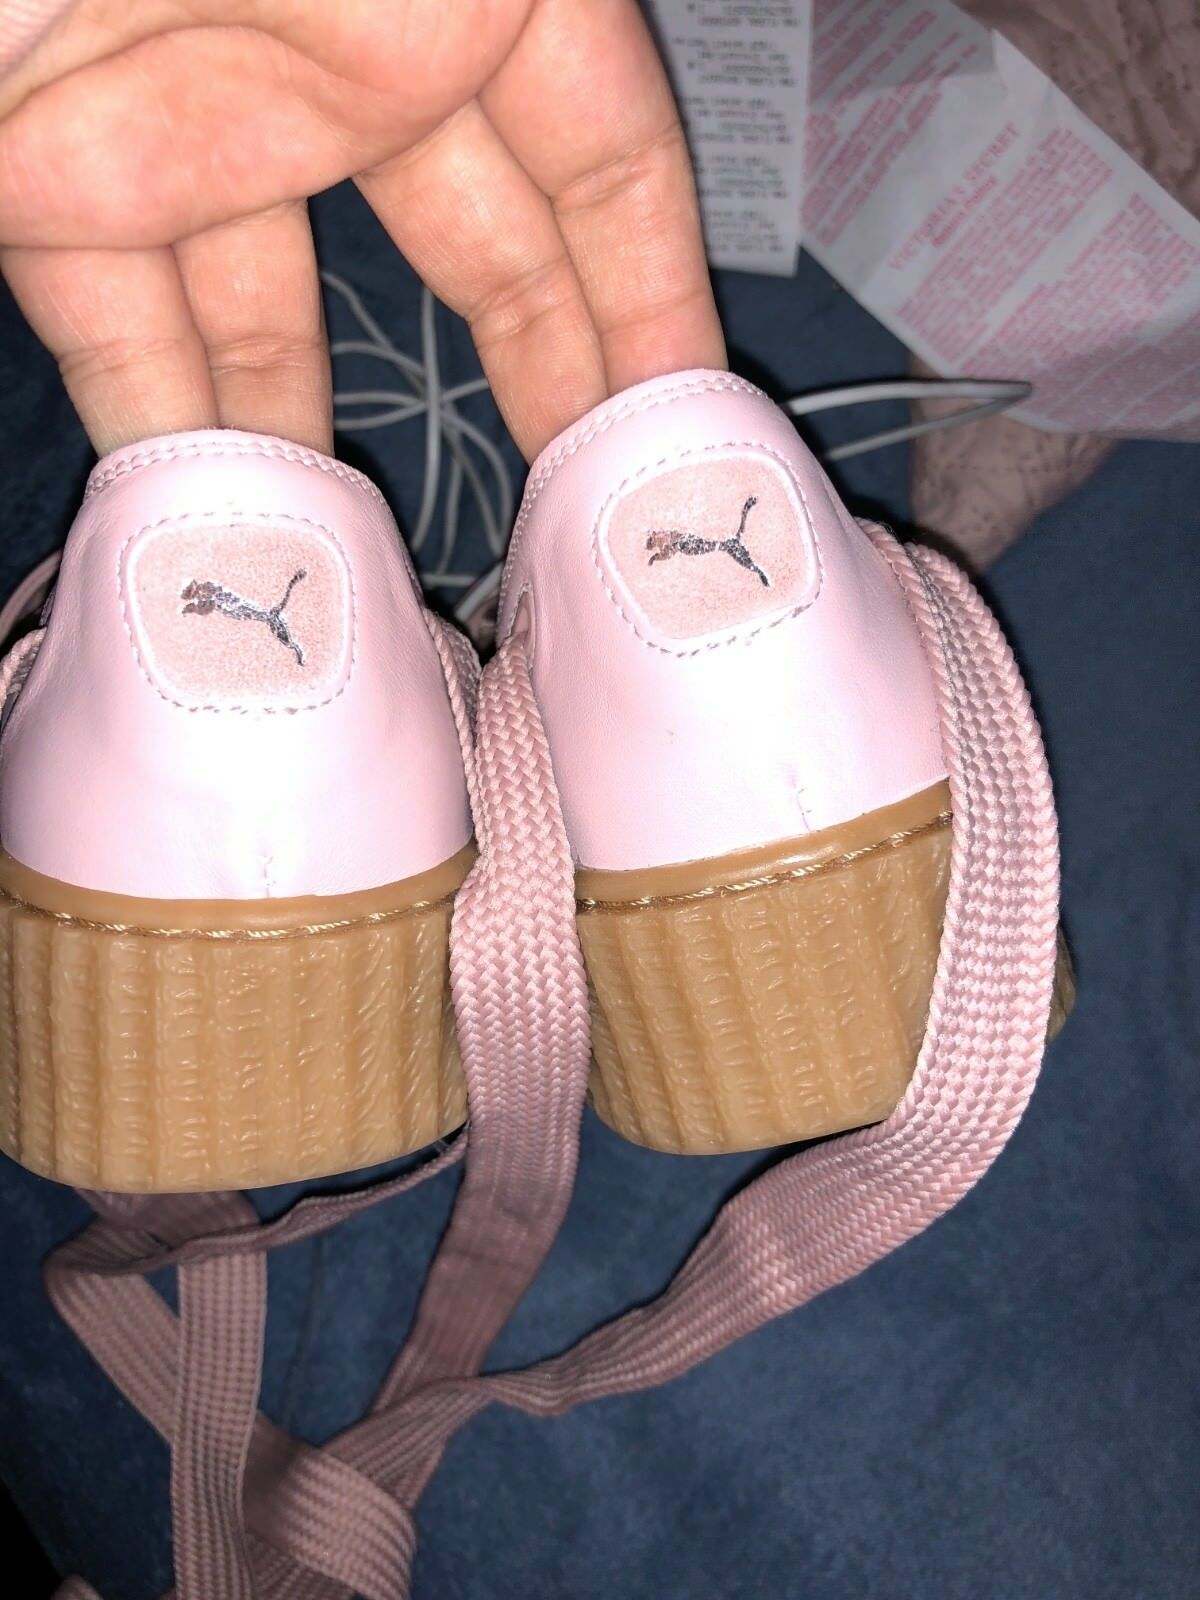 PUMA Fenty by Rihanna Pink Pink Pink Bow Creepers Lace Up Platforms Sandals shoes Size 8 63ed04